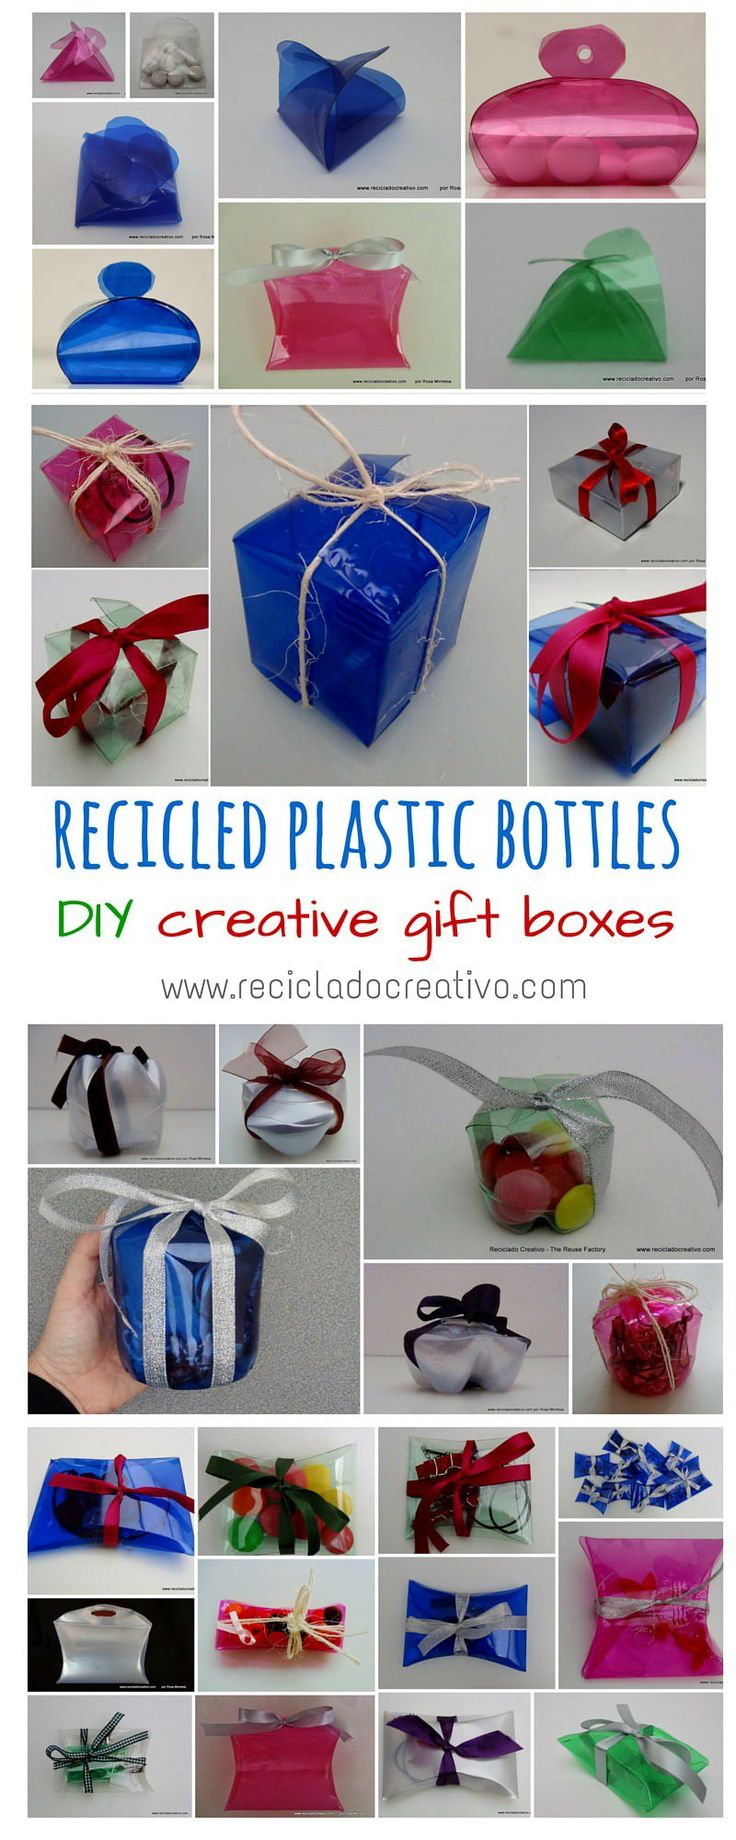 Plastic bottles recycling ideas recycled things - Amazing Gift Boxes Made Out Of Recycled Plastic Bottles